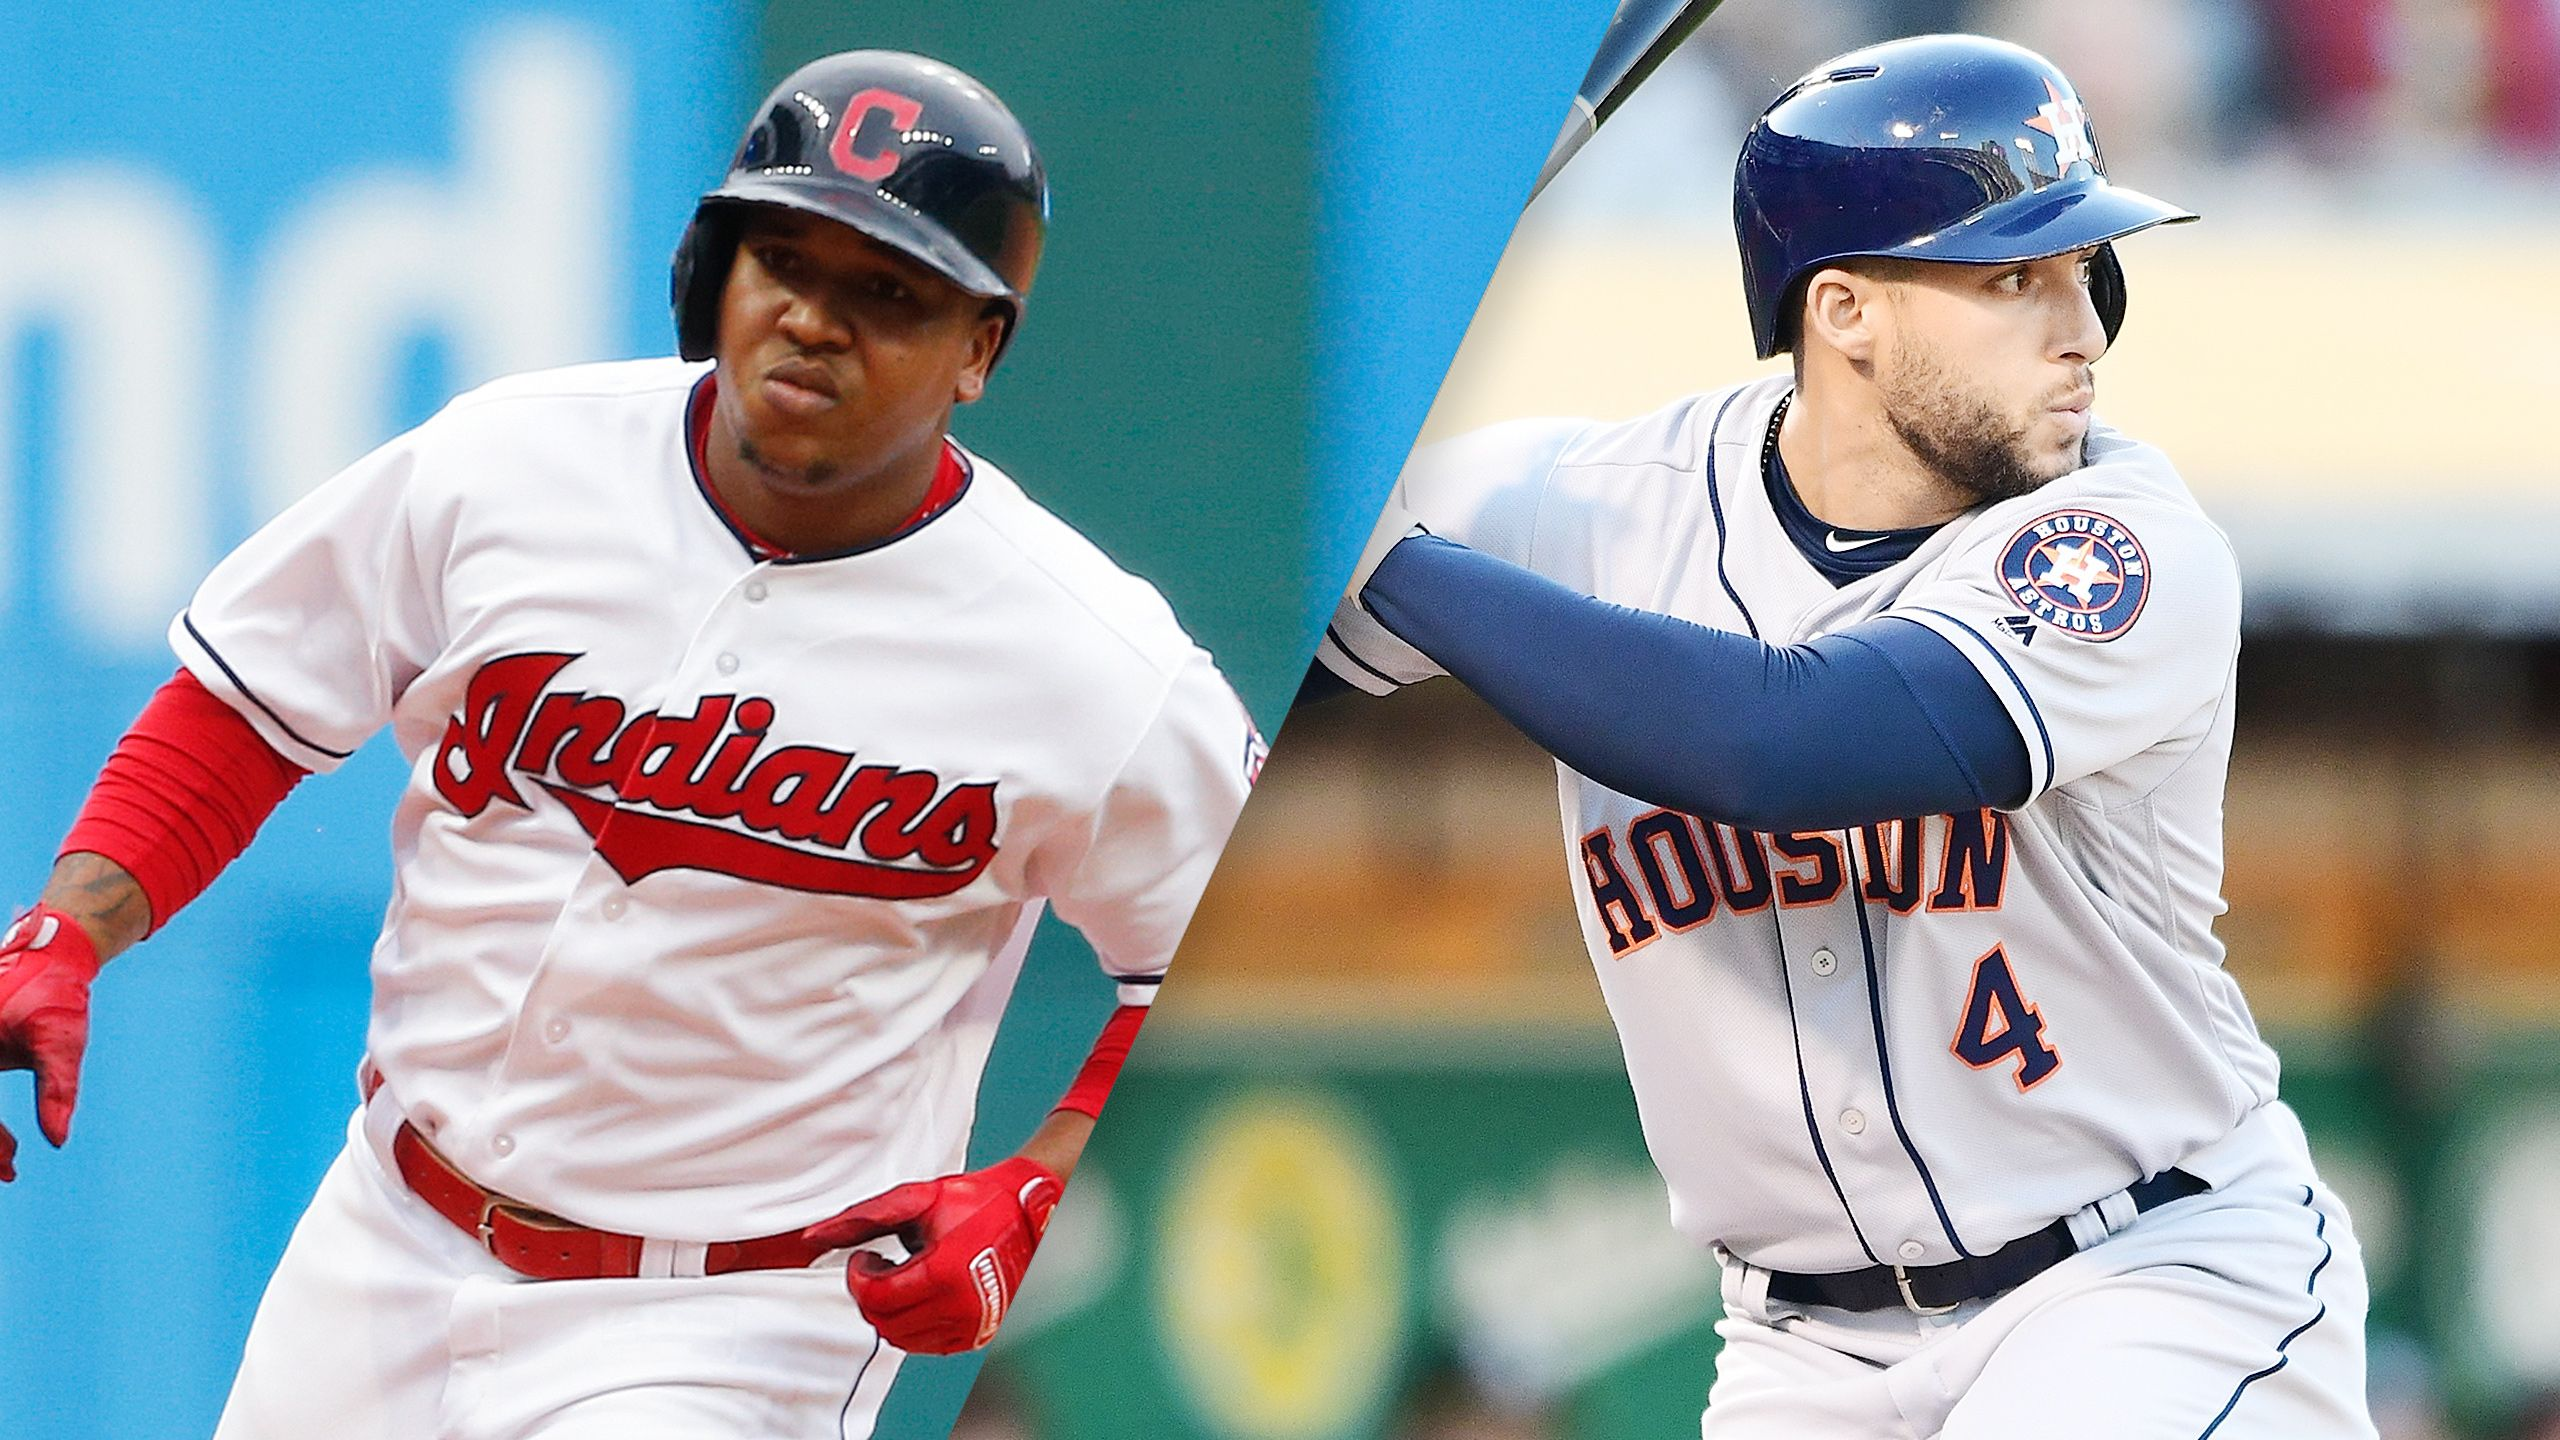 Cleveland Indians vs. Houston Astros (re-air)